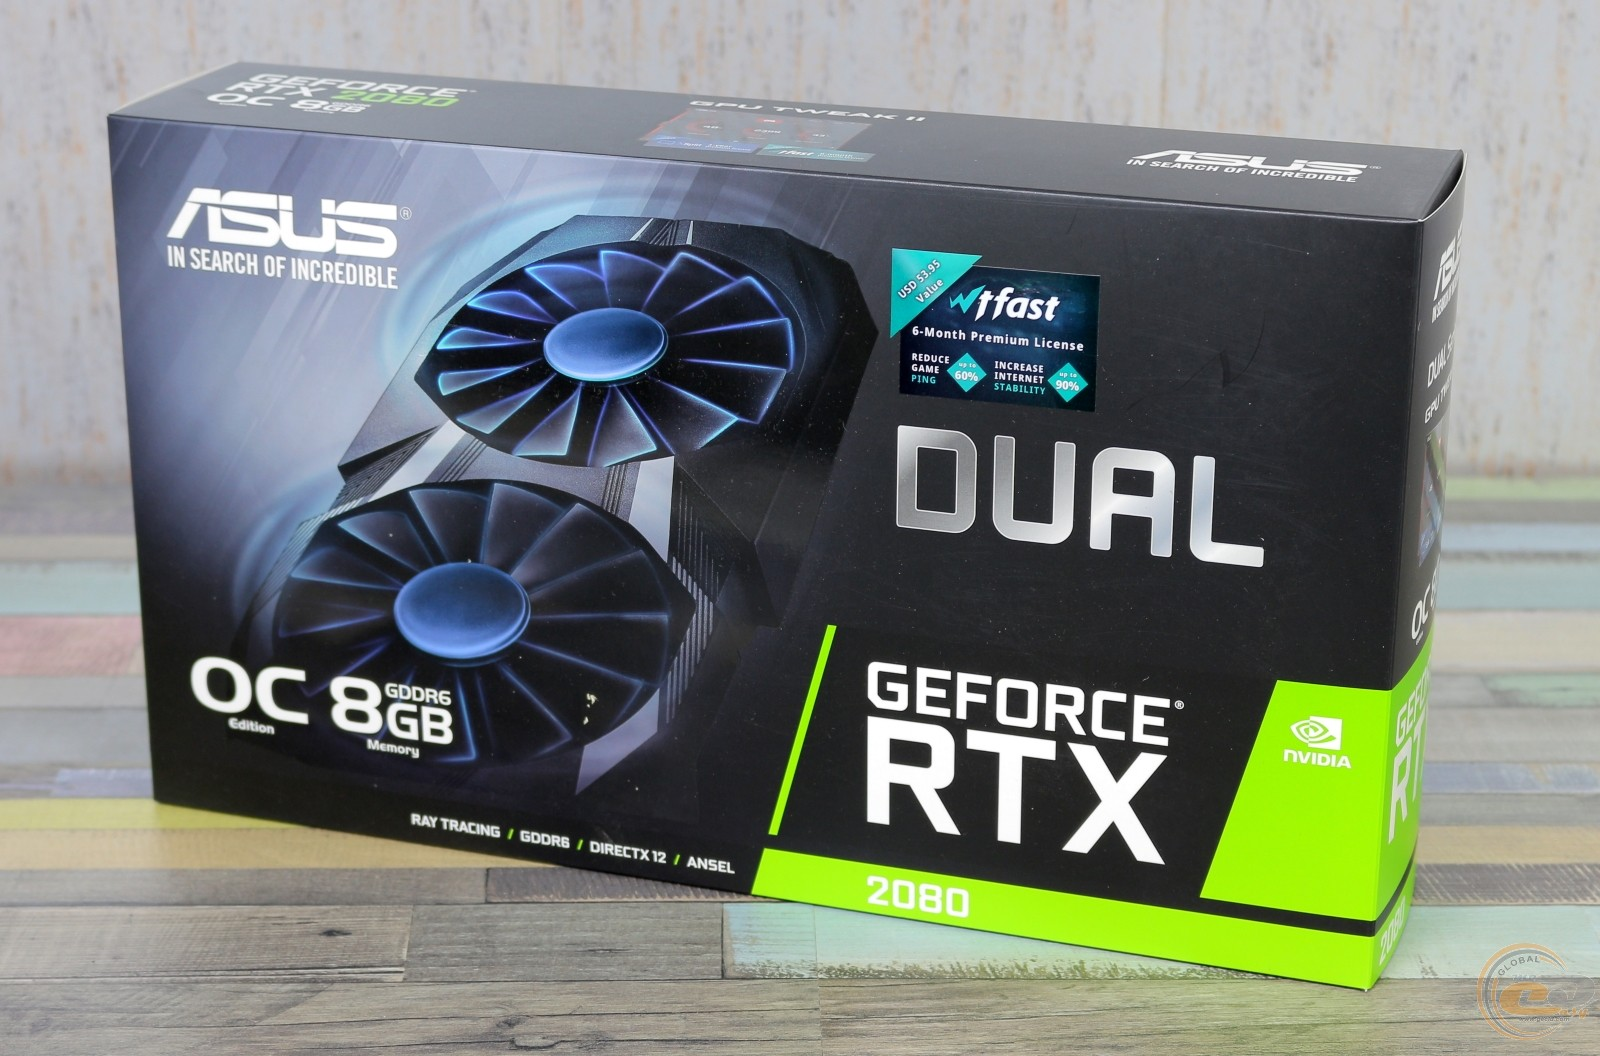 ASUS Dual GeForce RTX 2080 OC упаковка